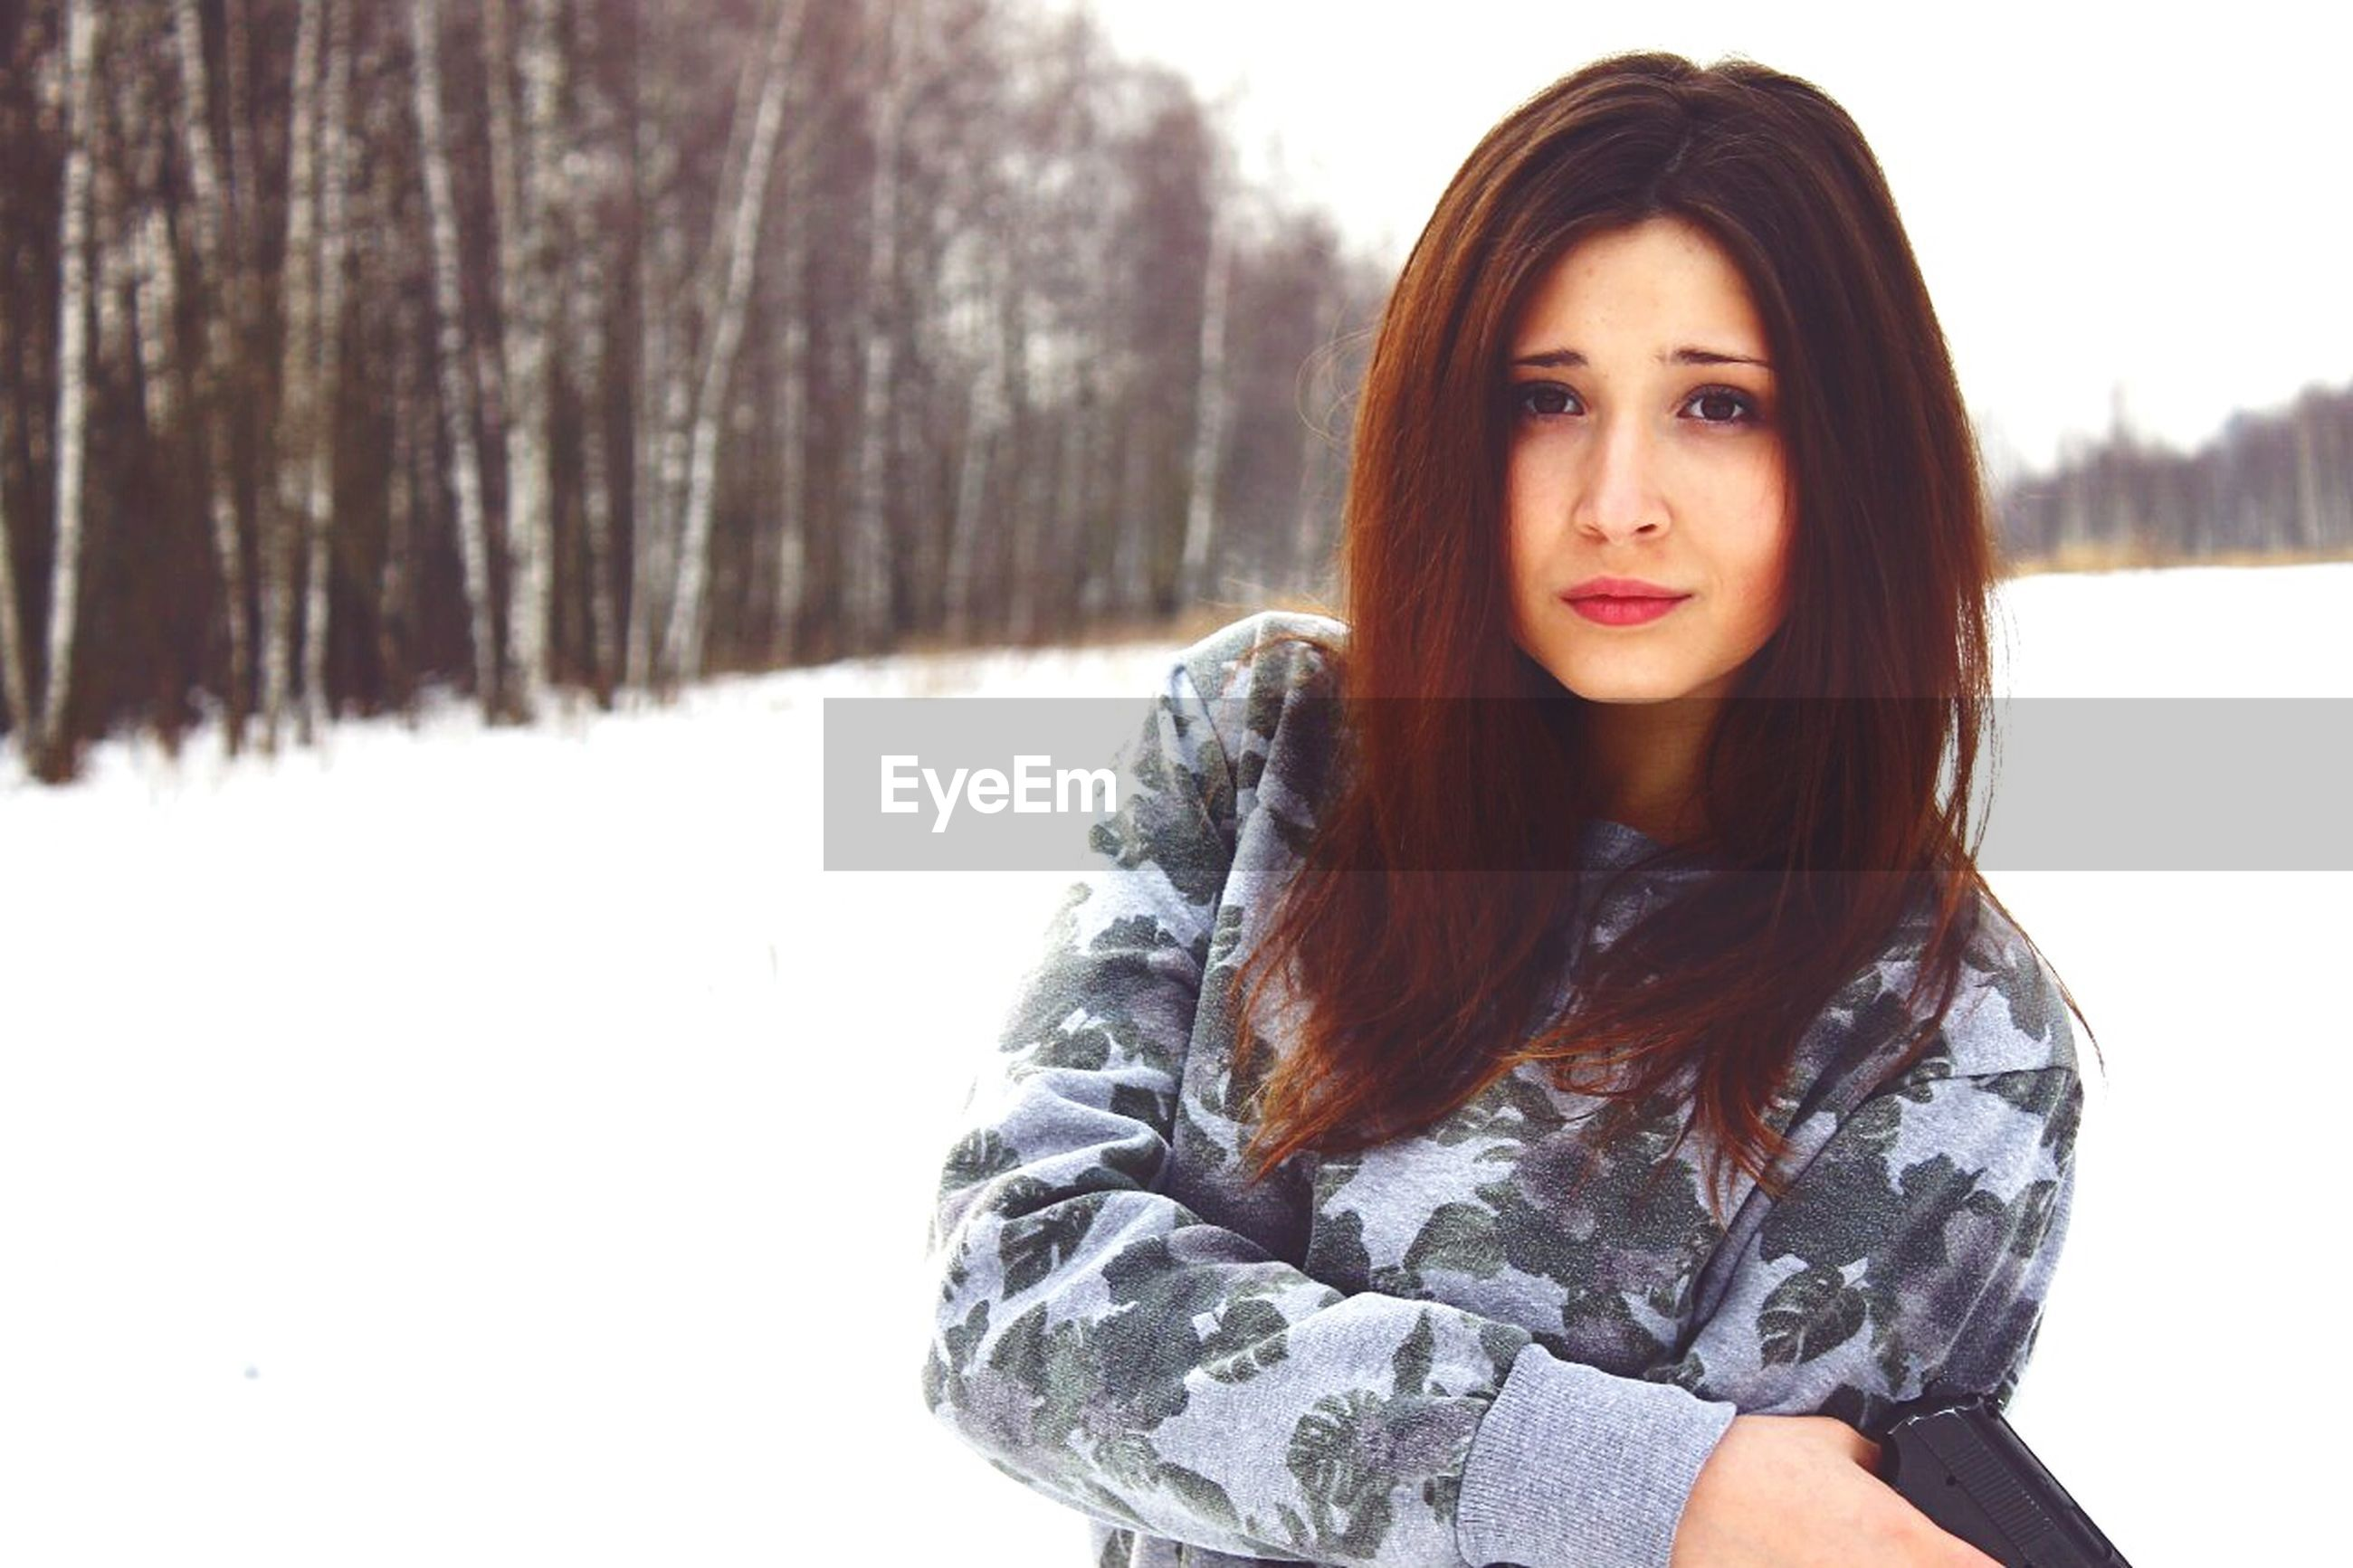 young adult, portrait, person, looking at camera, young women, lifestyles, front view, long hair, leisure activity, casual clothing, winter, smiling, cold temperature, standing, warm clothing, snow, tree